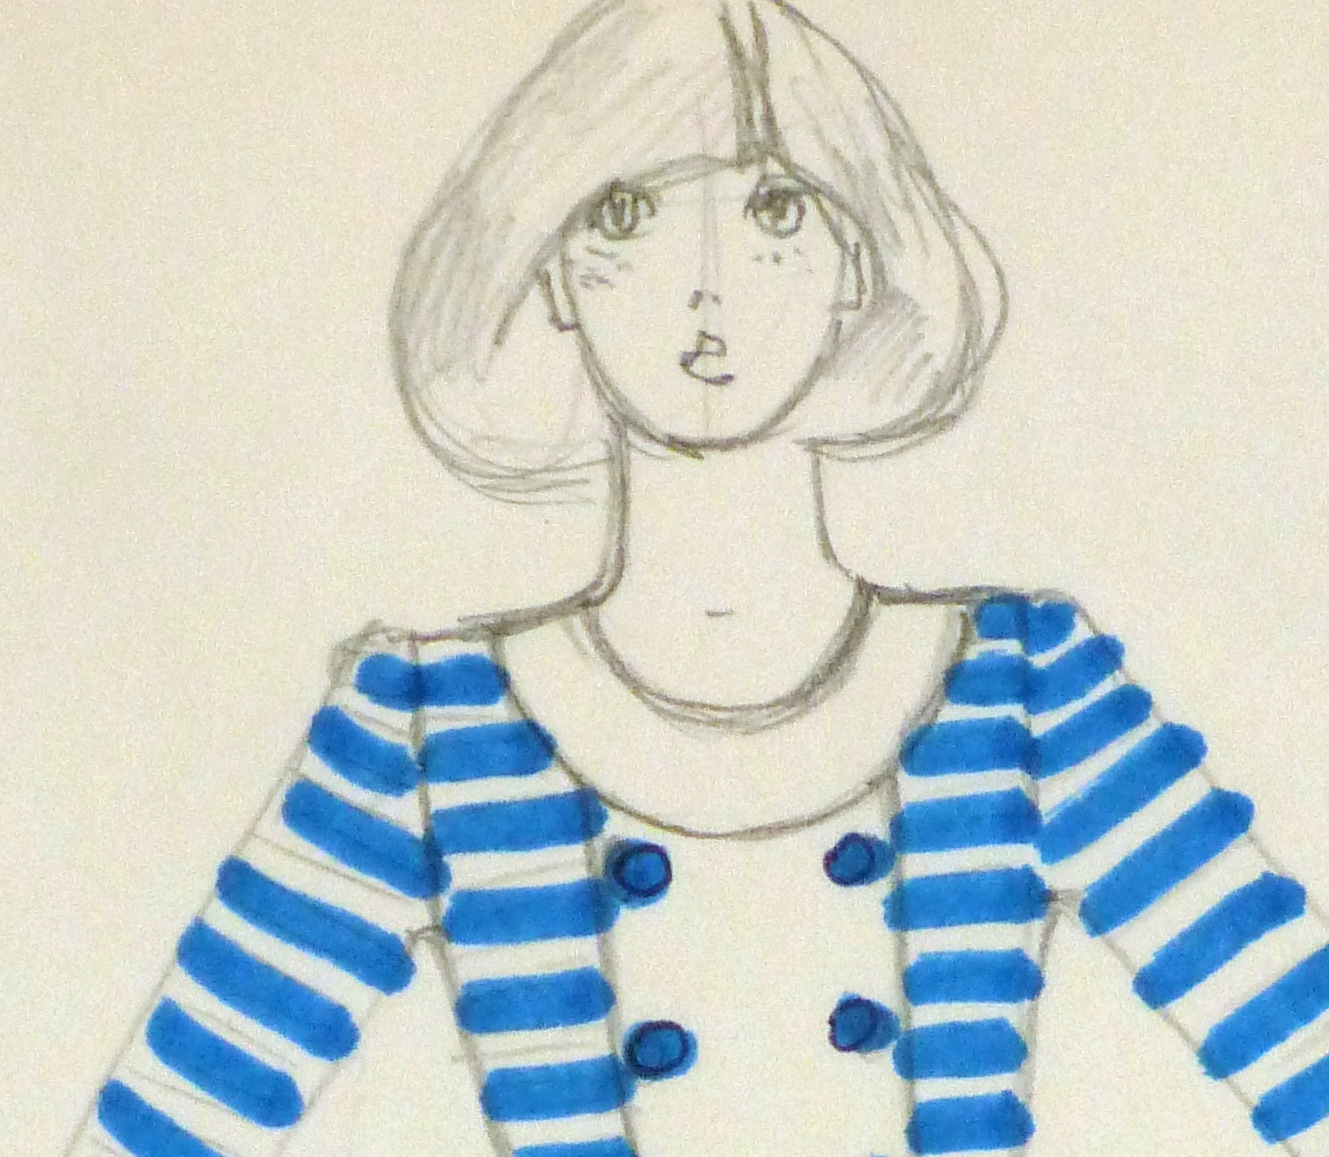 Ink & pencil Fashion Sketch - Blue Button - detail -10109M